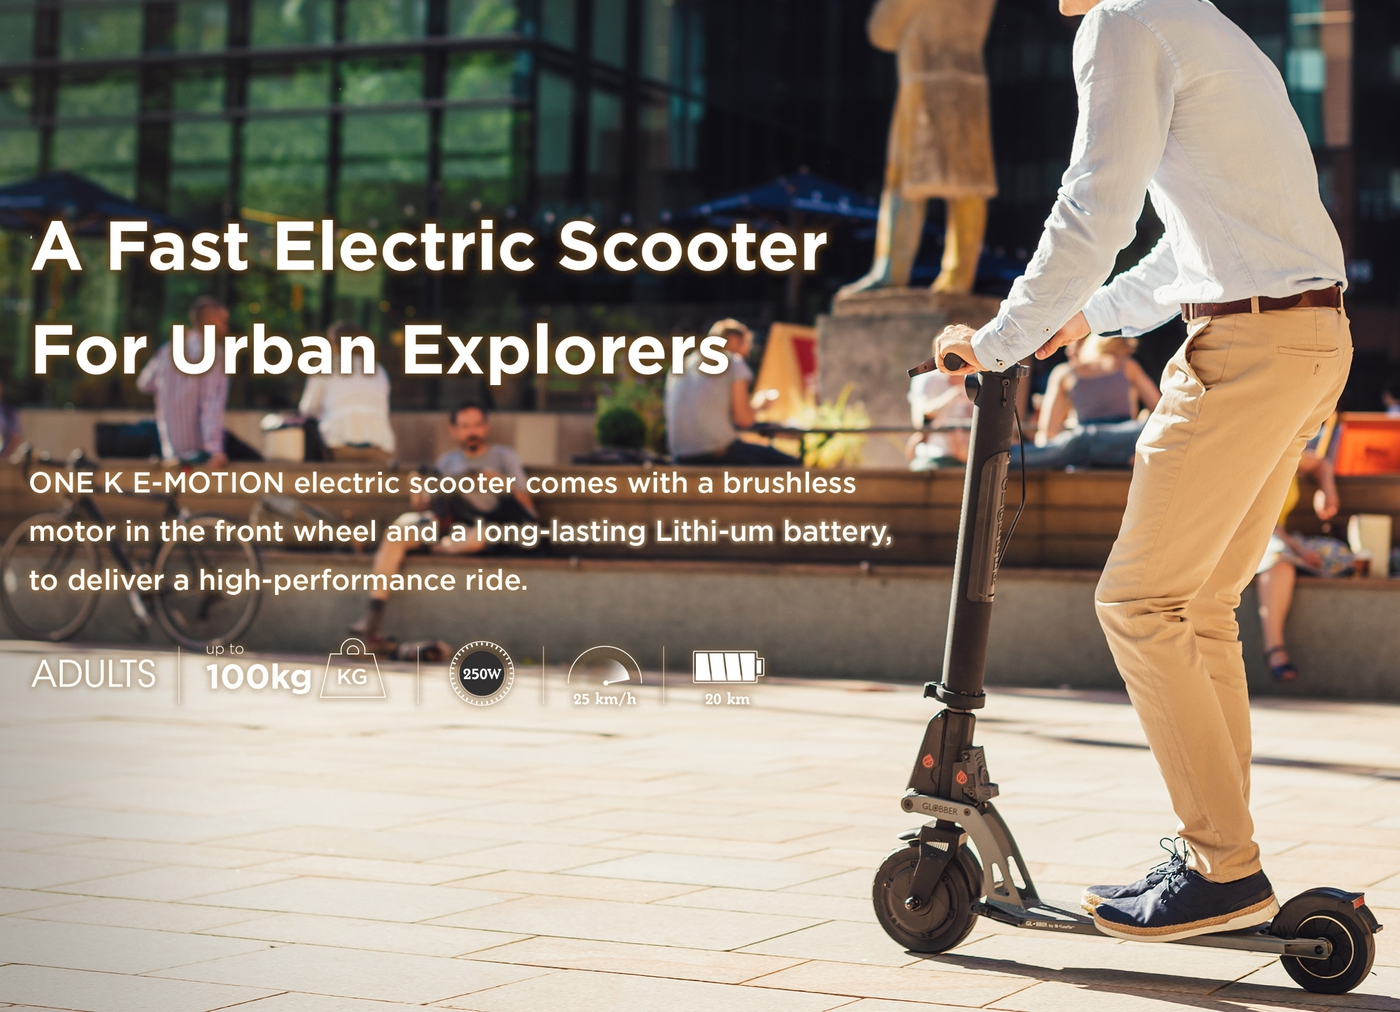 A fast electric scooter for urban explorers.